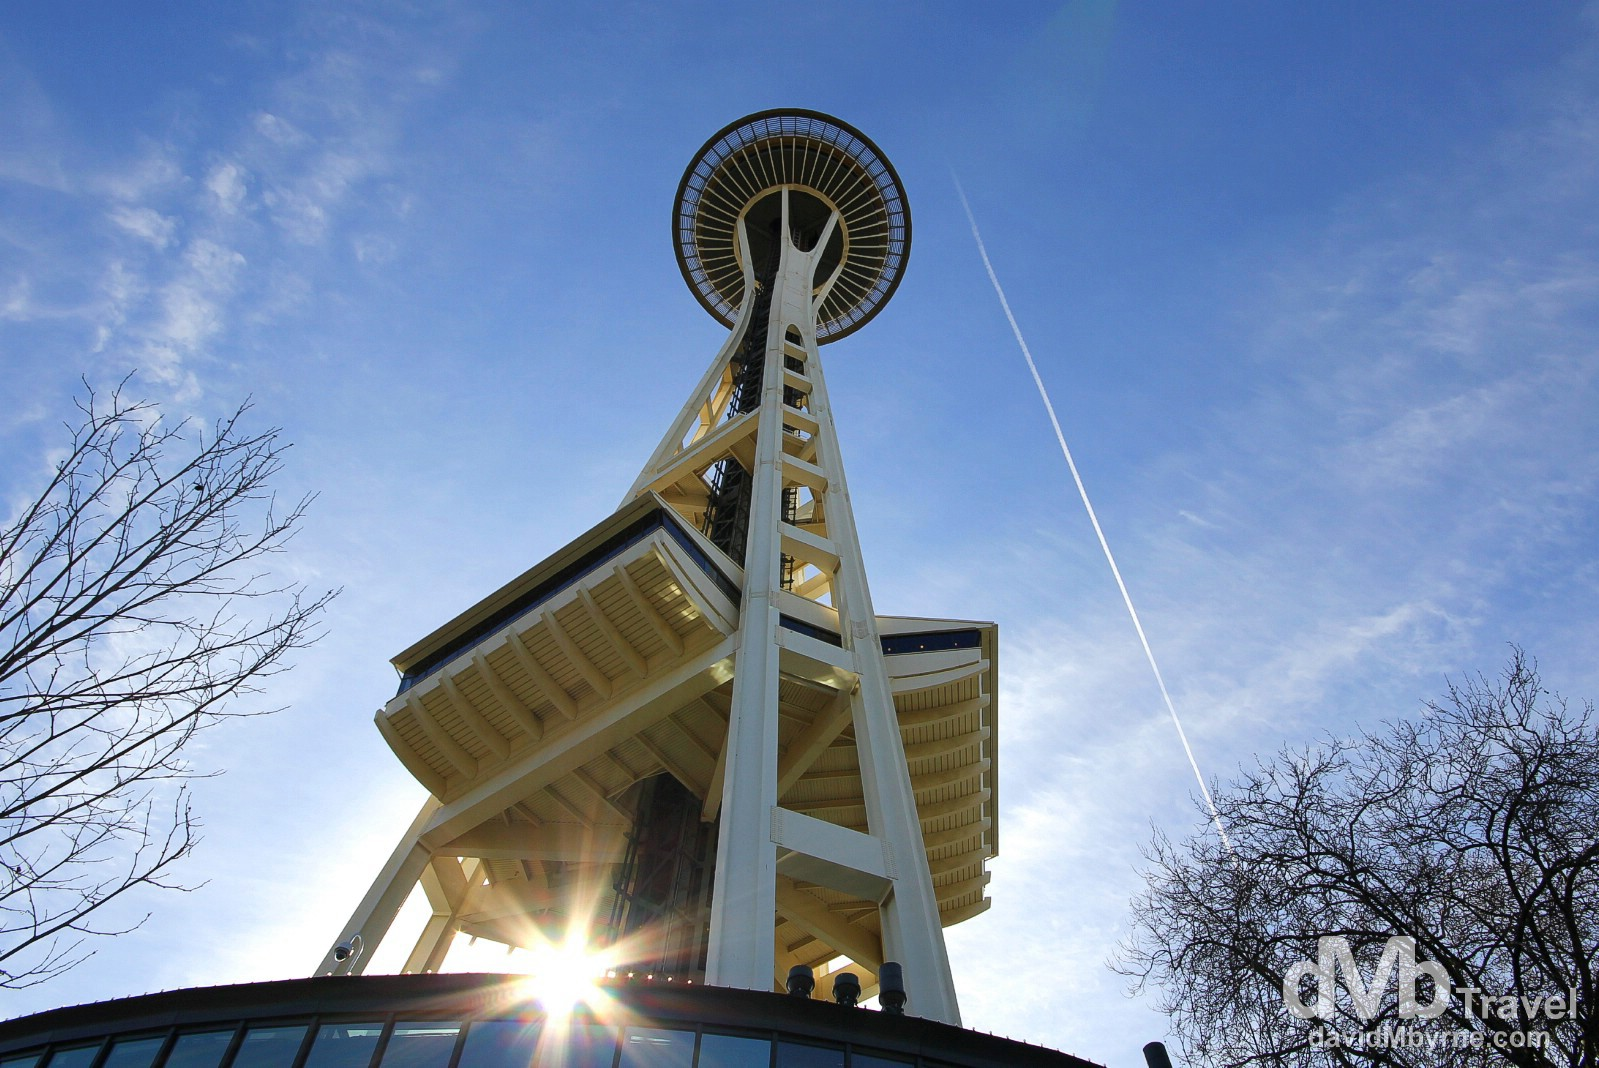 Sunburst from under the iconic Space Needle in Seattle, Washington, USA. March 25th 2013.